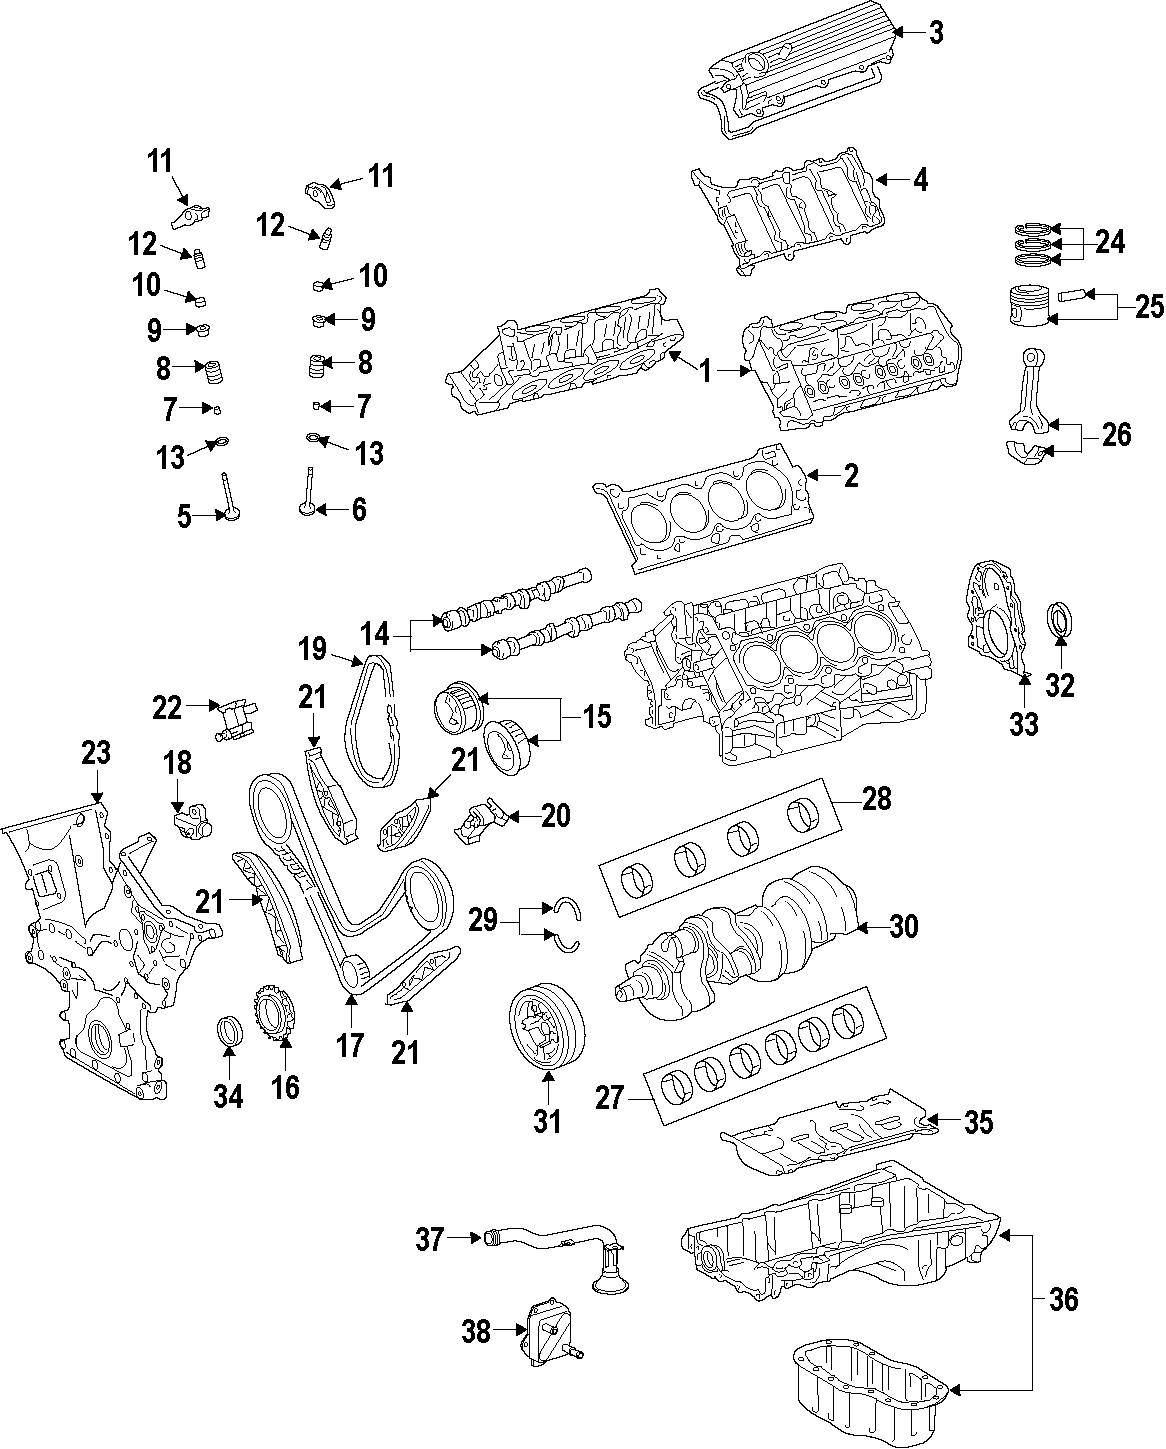 Toyota Tundra Engine Timing Chain Guide